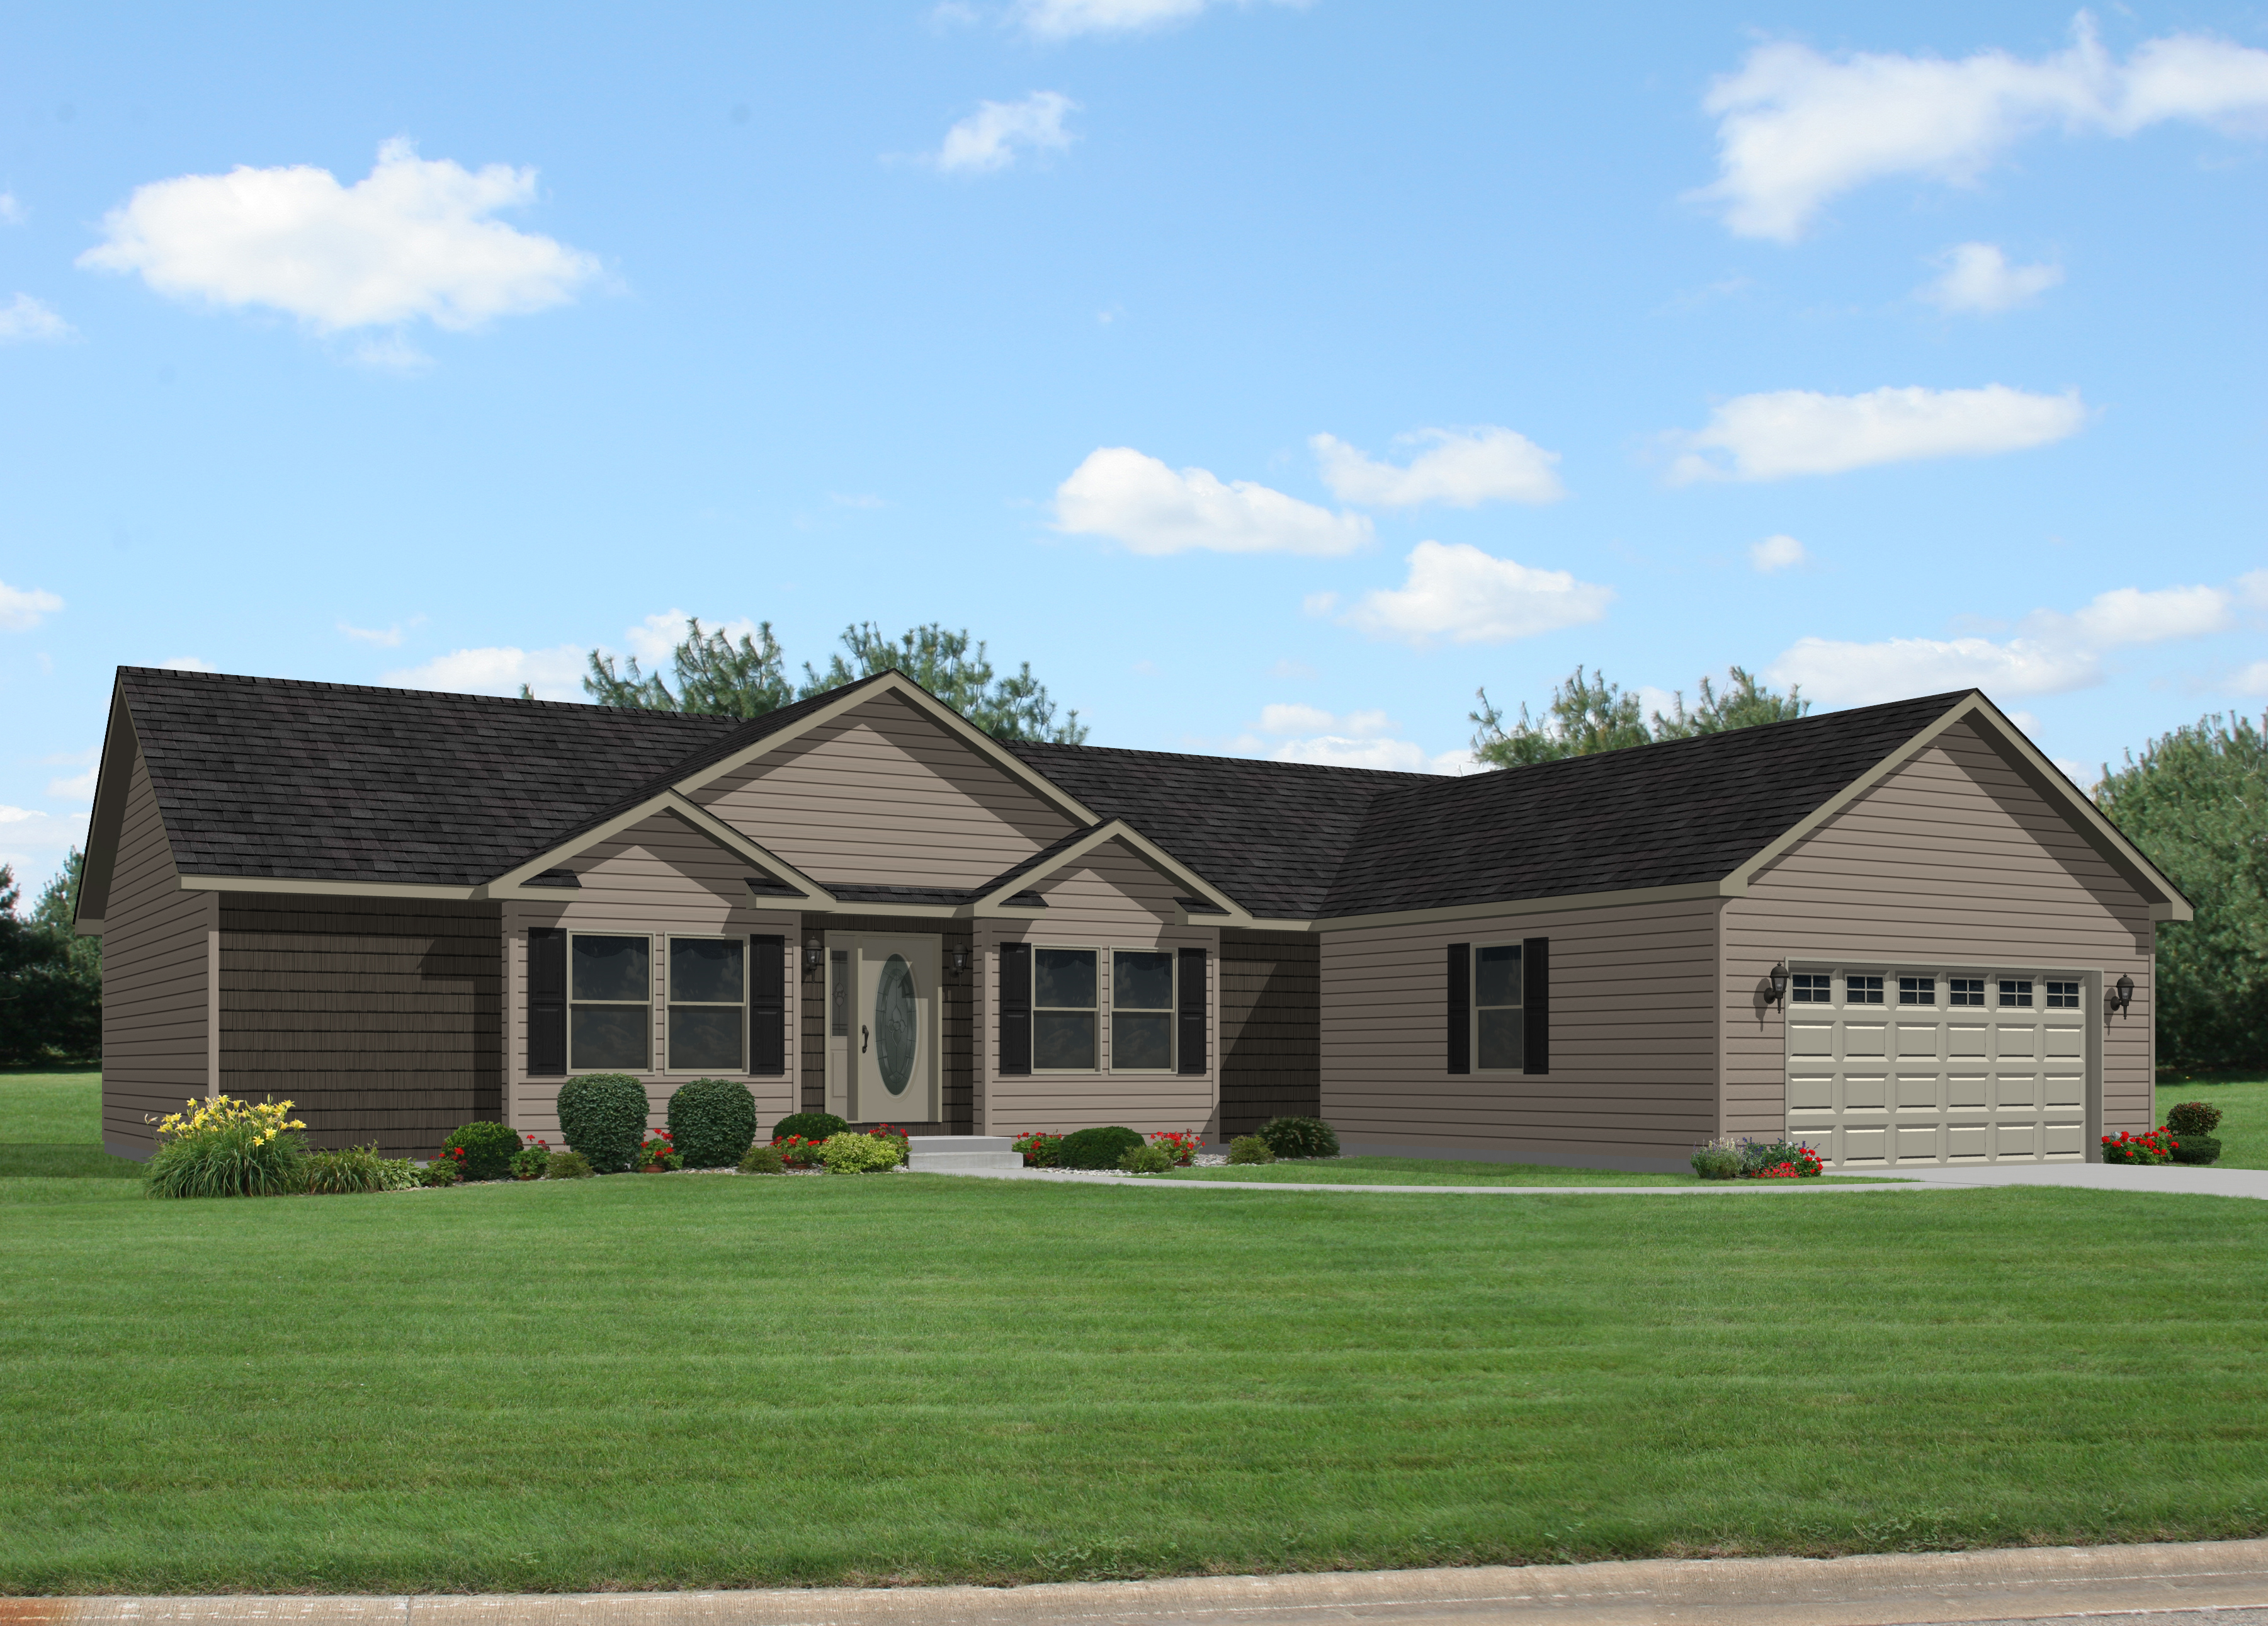 Grandville Le Modular Ranch Oakdale Iii Rg749a Find A Home Commodore Of Indiana